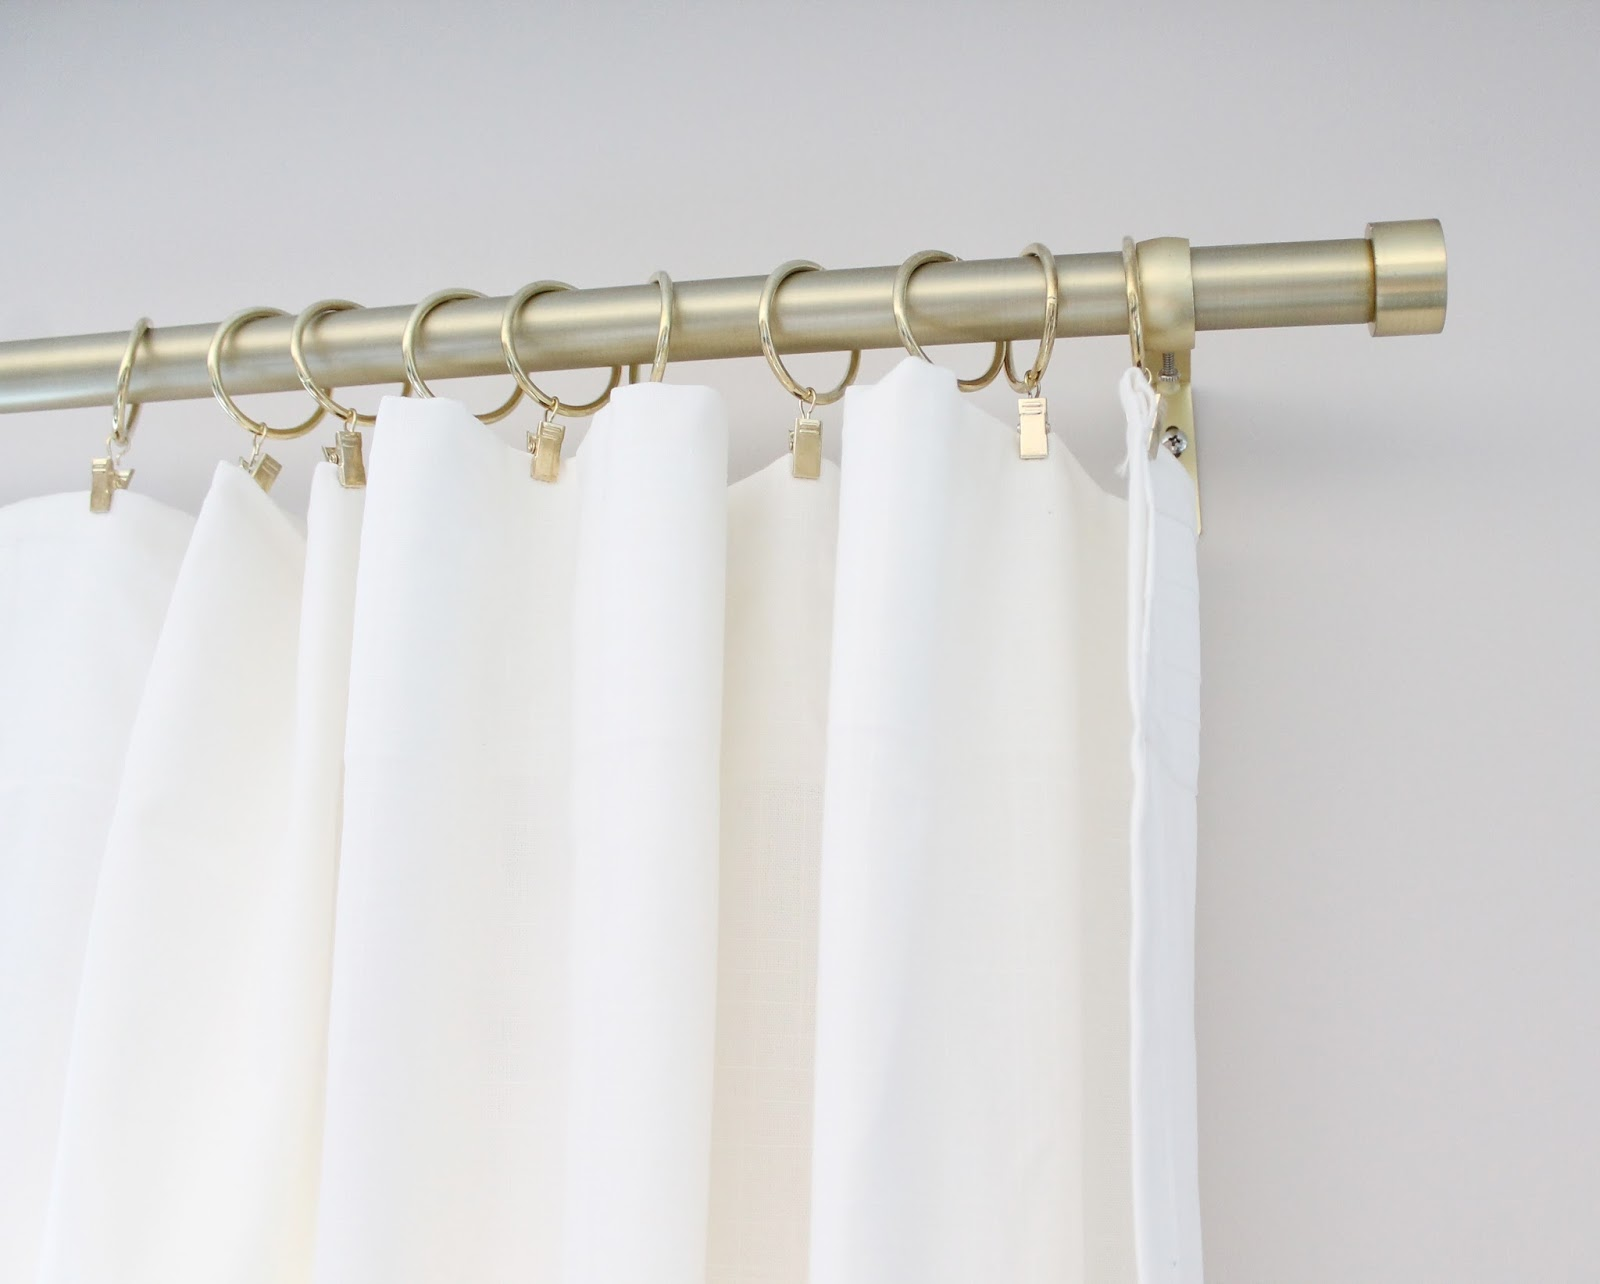 And Now On To The Best Part These Curtain Rods They Are Umbra Ca Brushed Br I Love Them Very Similar From West Elm